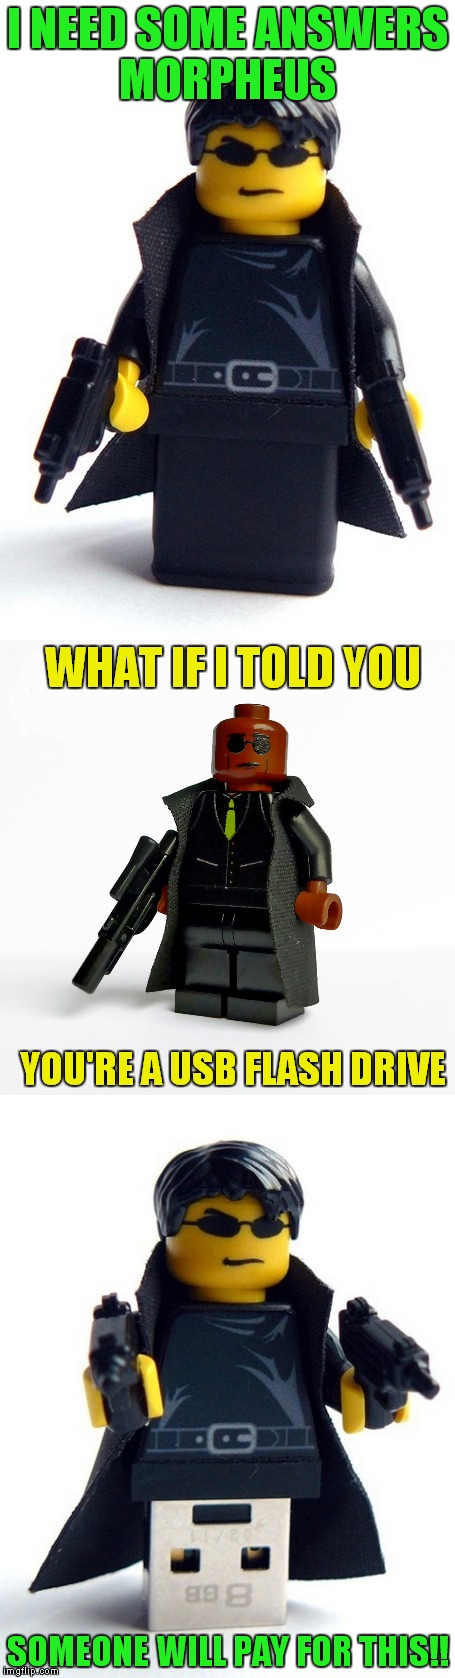 Lego week you say? Juicy baby this ones for you ;) | I NEED SOME ANSWERS MORPHEUS SOMEONE WILL PAY FOR THIS!! WHAT IF I TOLD YOU YOU'RE A USB FLASH DRIVE | image tagged in lego week,what if i told you,the matrix | made w/ Imgflip meme maker